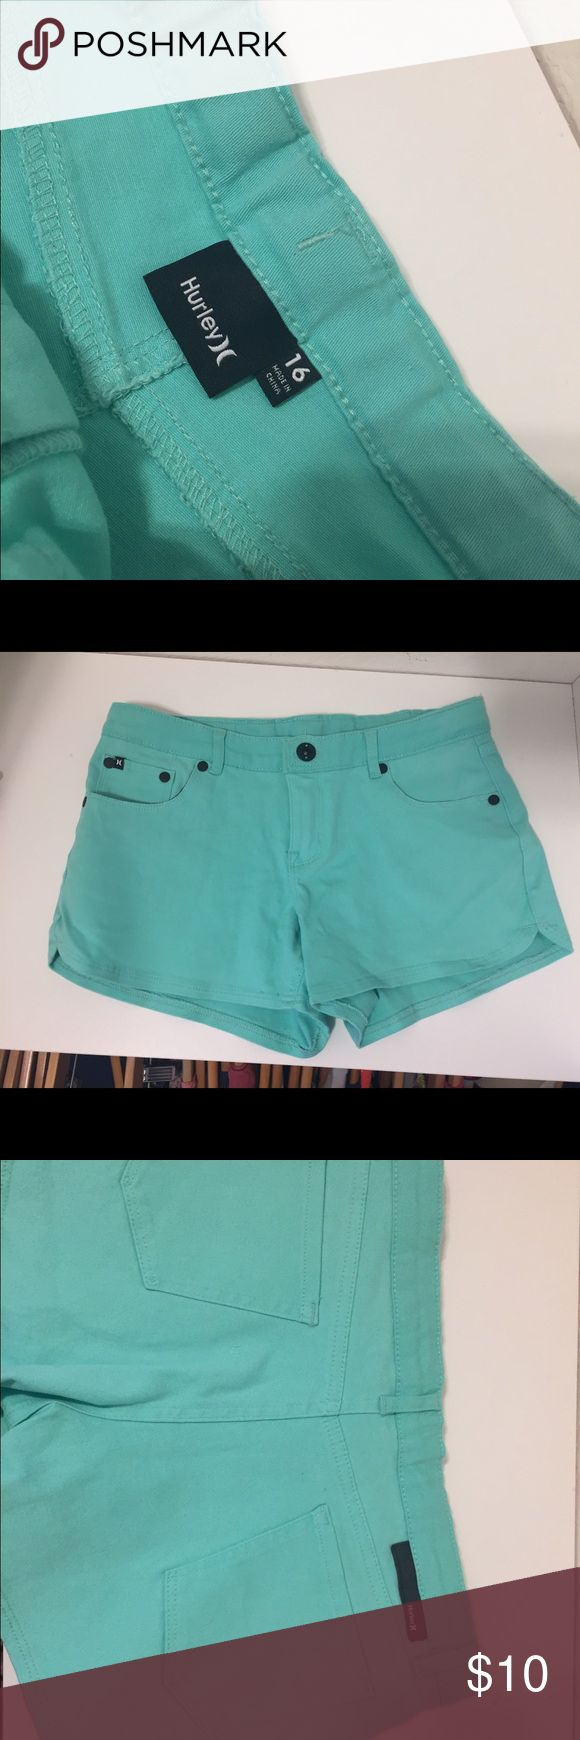 Hurley teal shorts with adjustable waist NWOT NWOT Hurley teal shorts with adjustable waist Hurley Bottoms Shorts